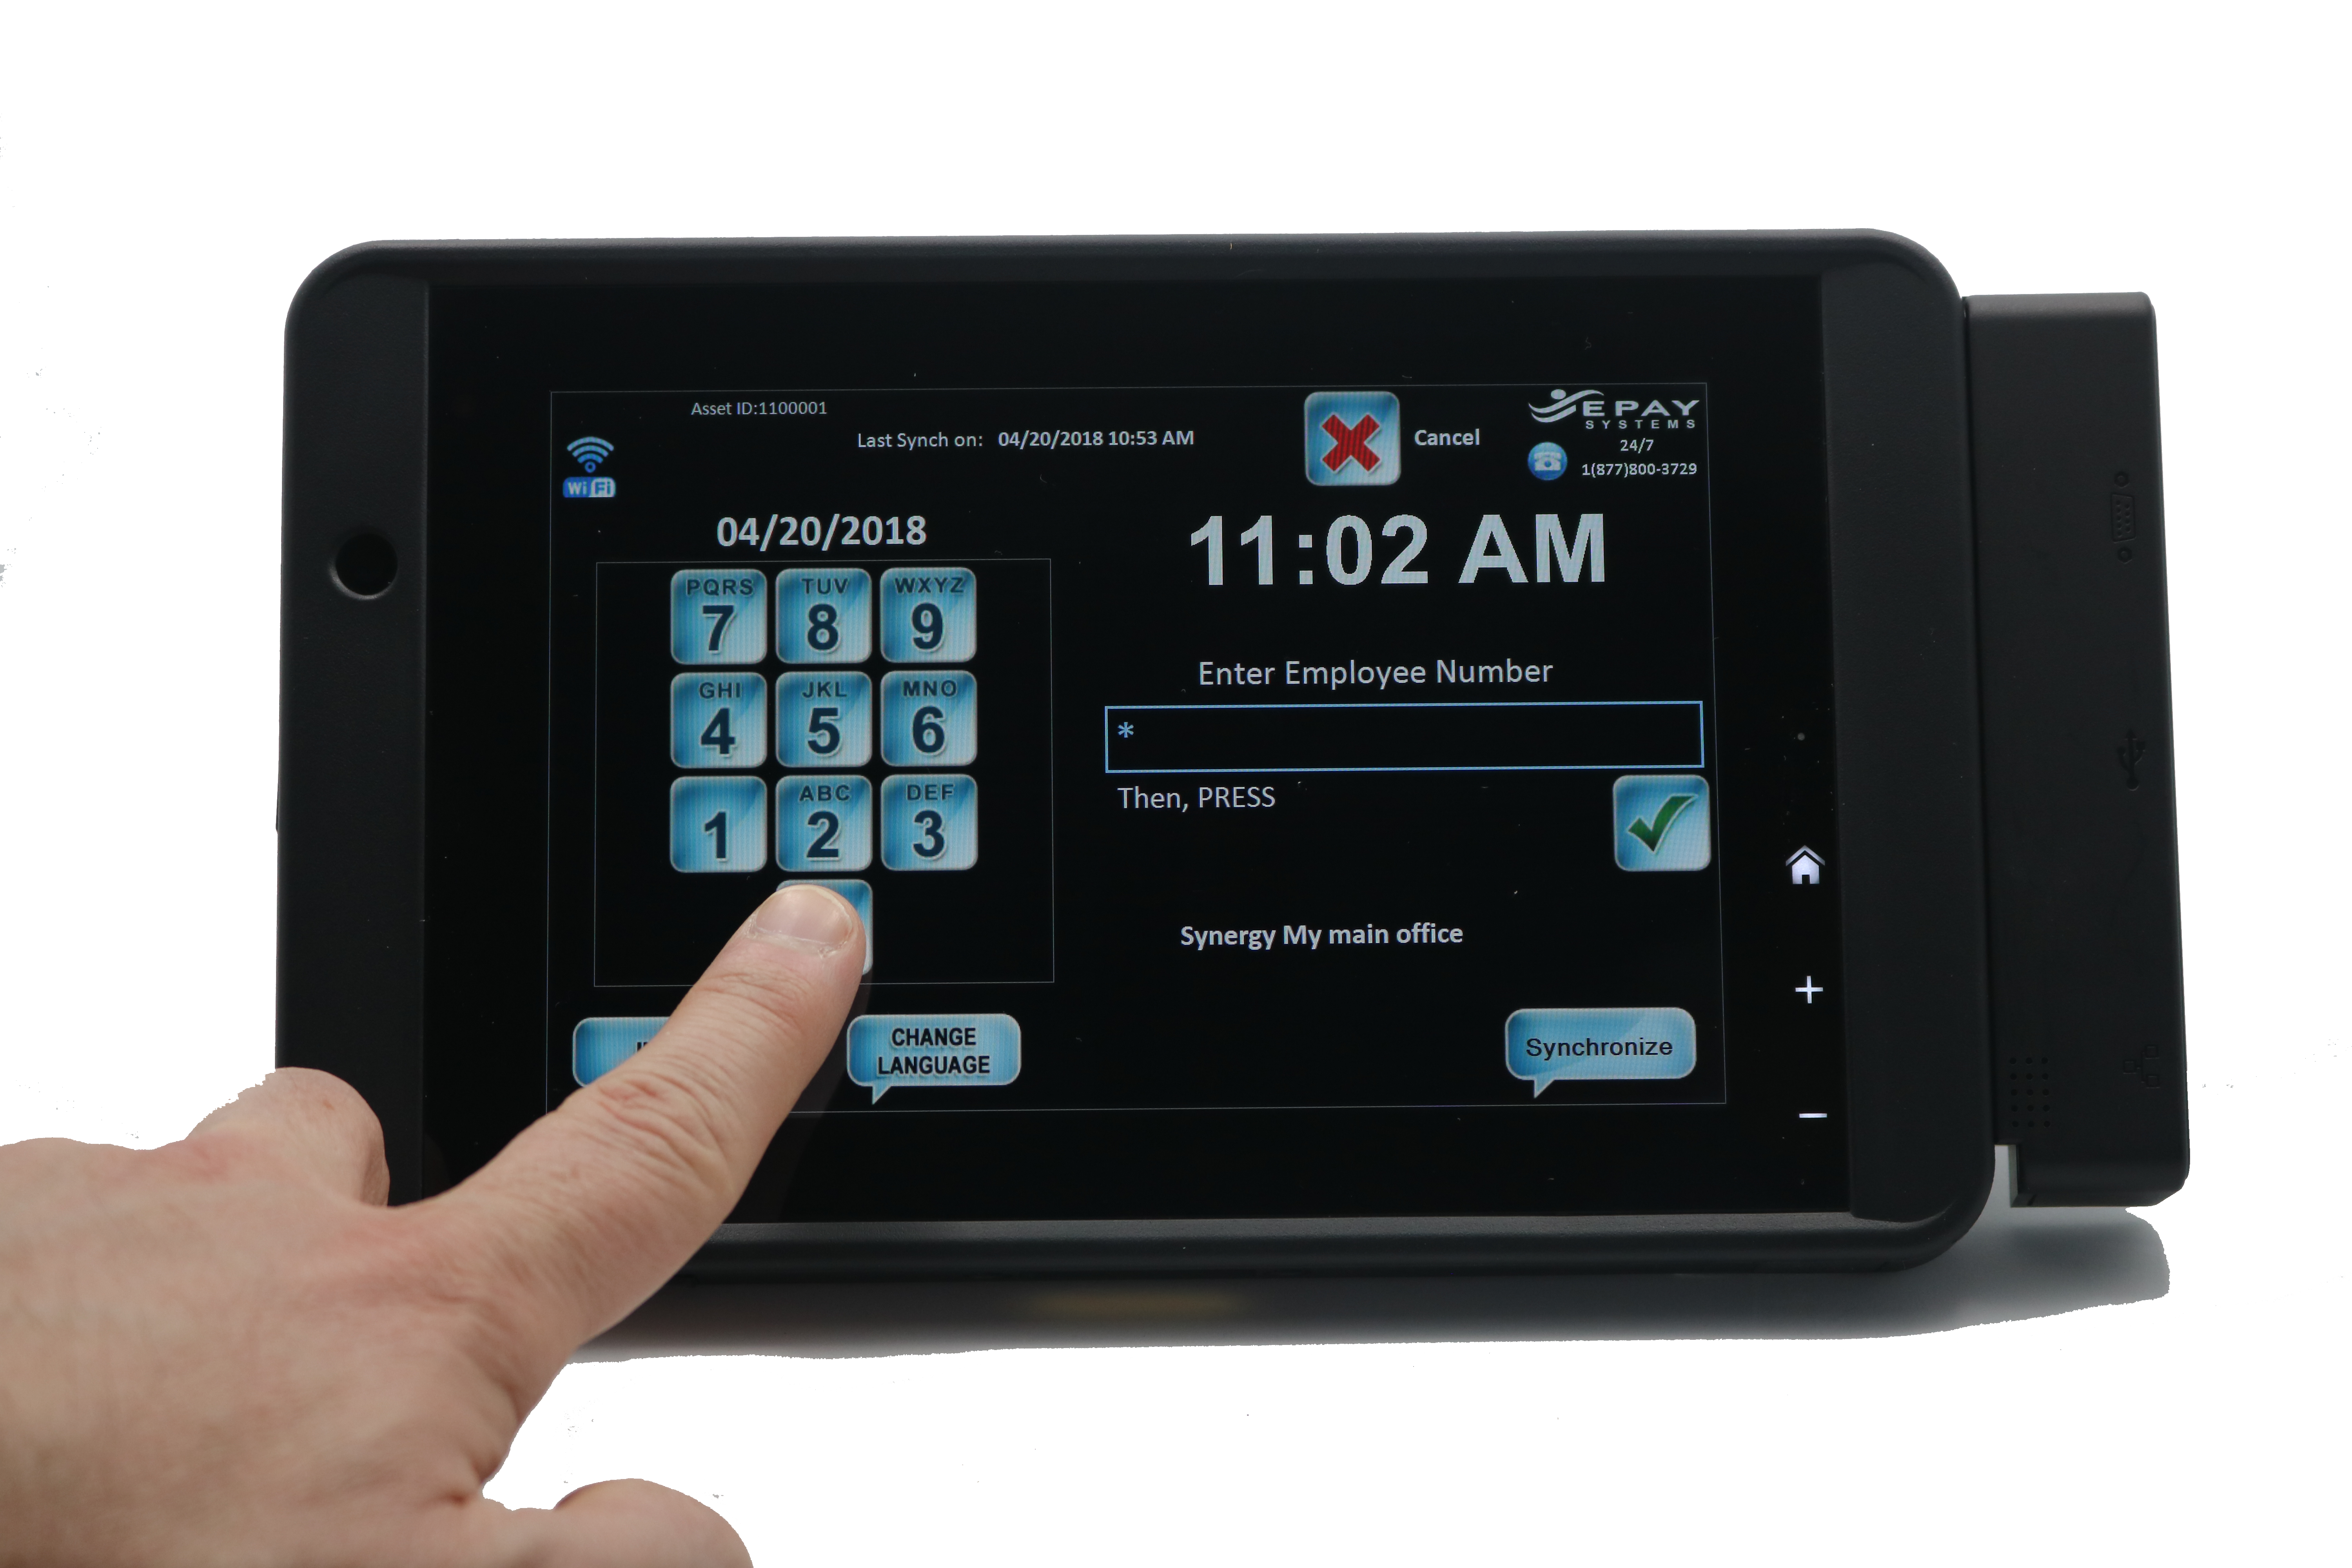 EPAY's New Anywhere, Everywhere Time Clock: the Portable, Powerful WalTer S18